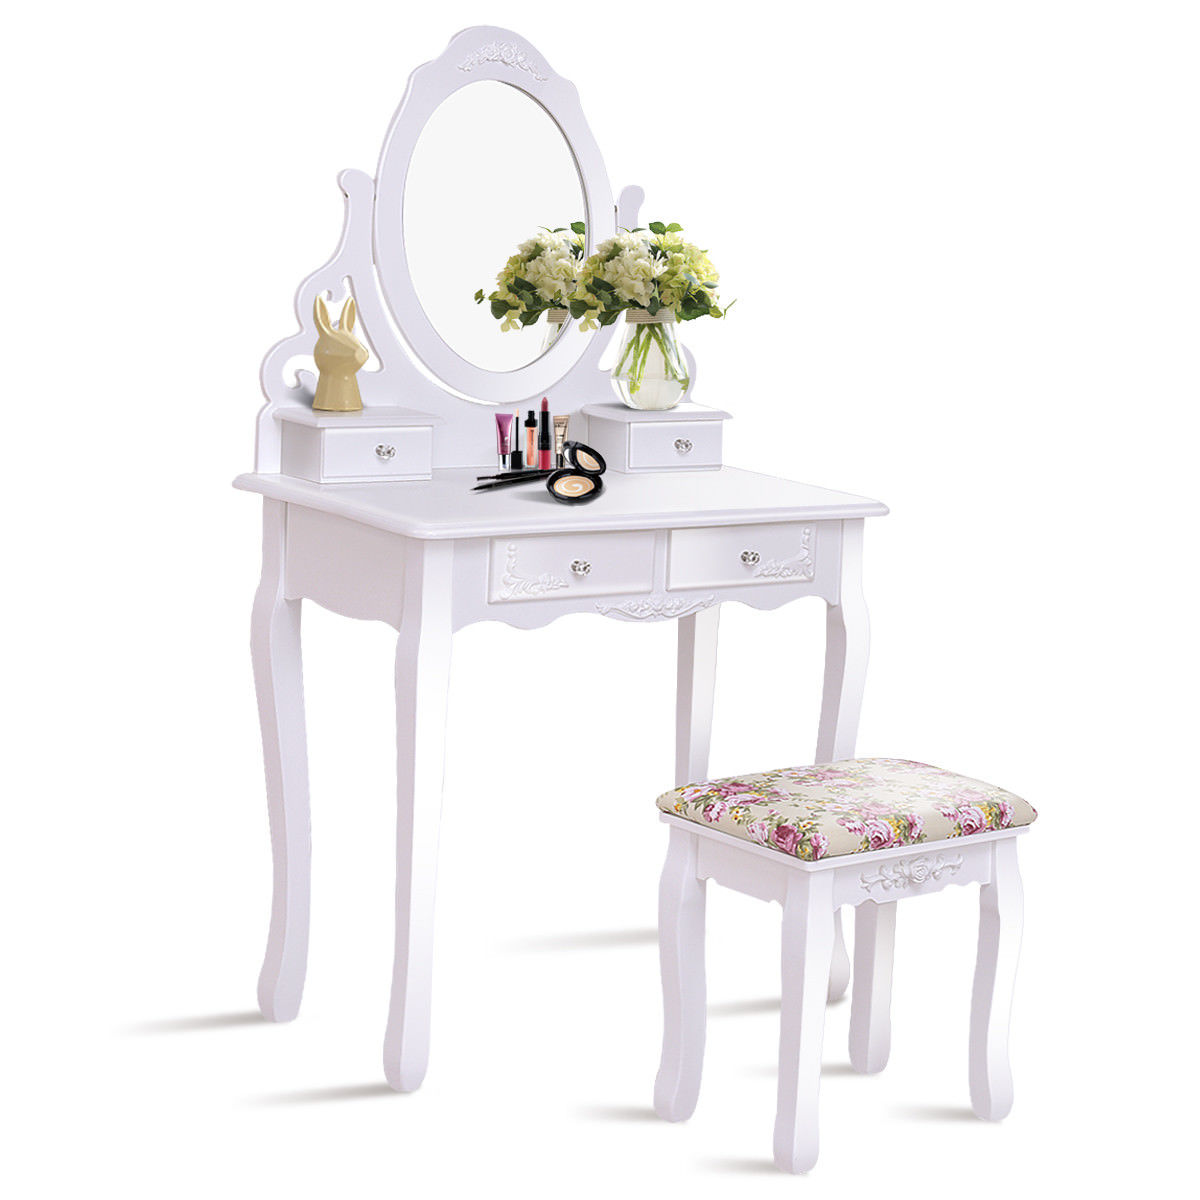 Gymax Bathroom Wood Vanity Makeup Dressing Table Stool Set White